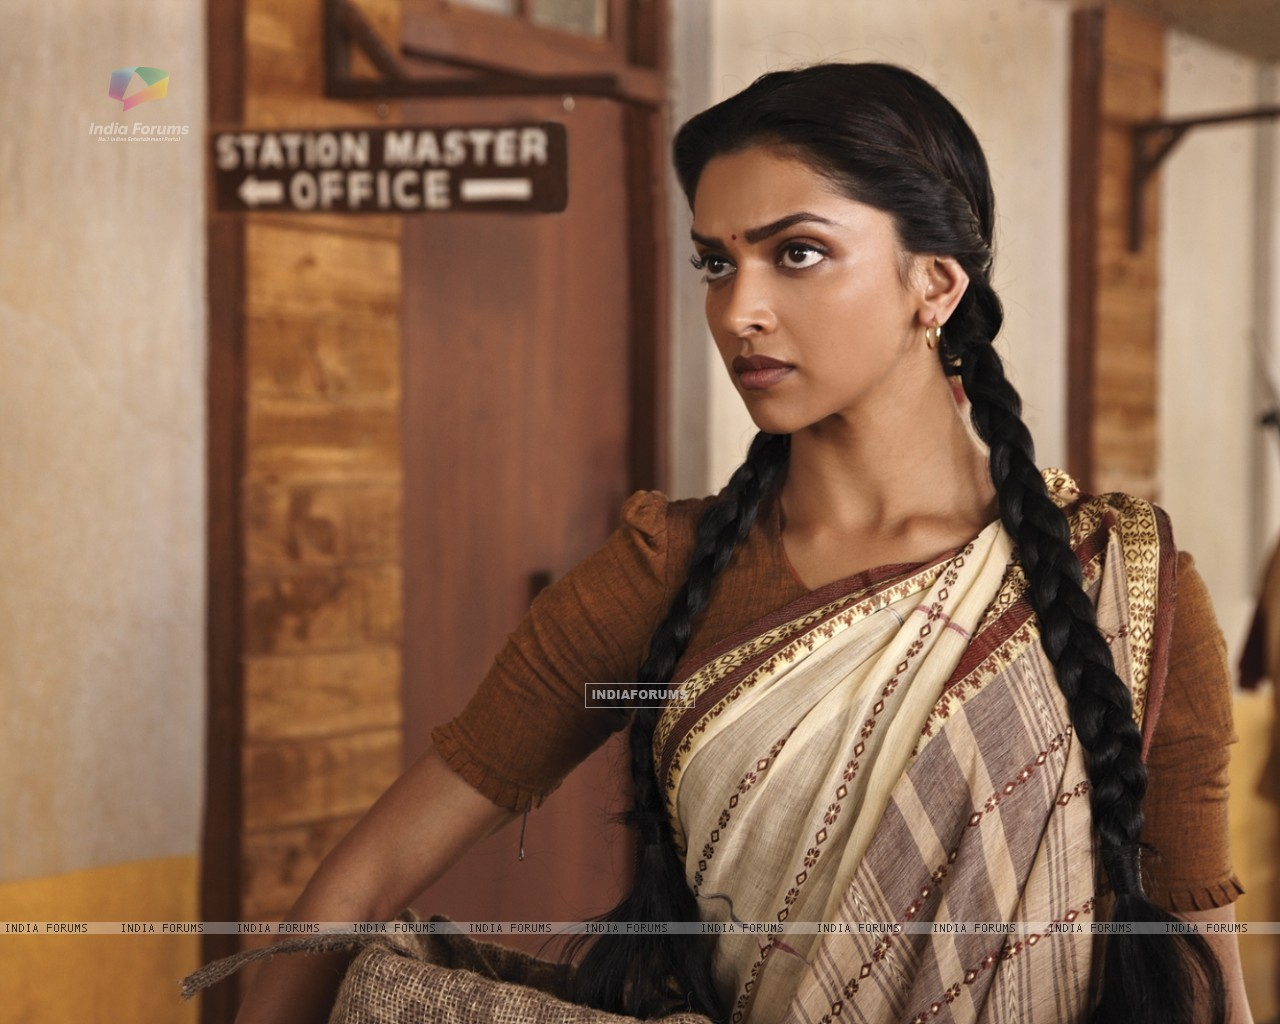 Deepika Padukone in the movie Khelein Hum Jee Jaan Sey (105910) size:1280x1024